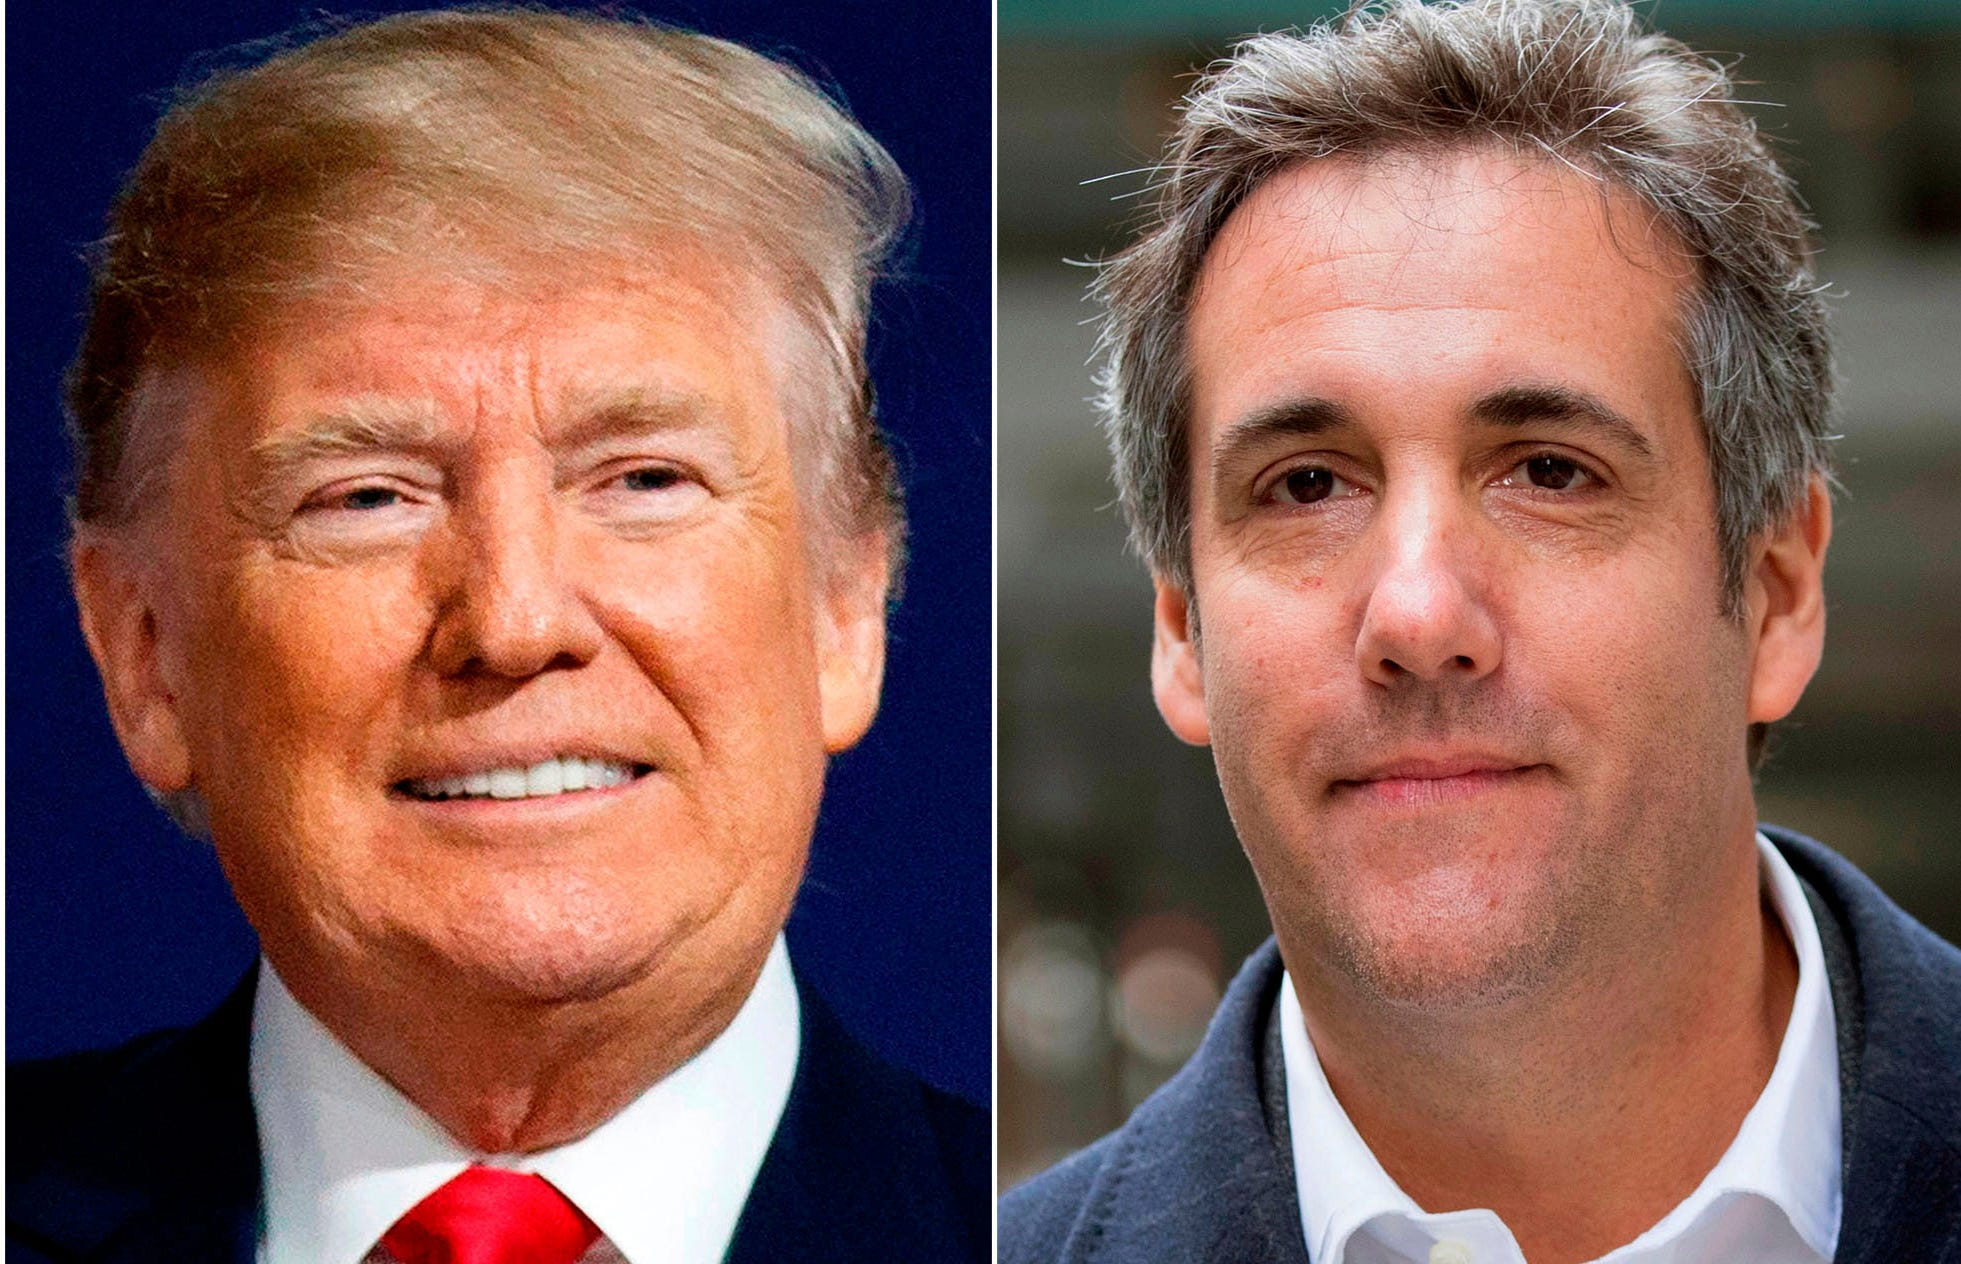 President Donald Trump's former personal attorney and fixer Michael Cohen pleaded guilty Nov. 29 to one count of lying to Congress about his work on a project to build a Trump Tower in Moscow.